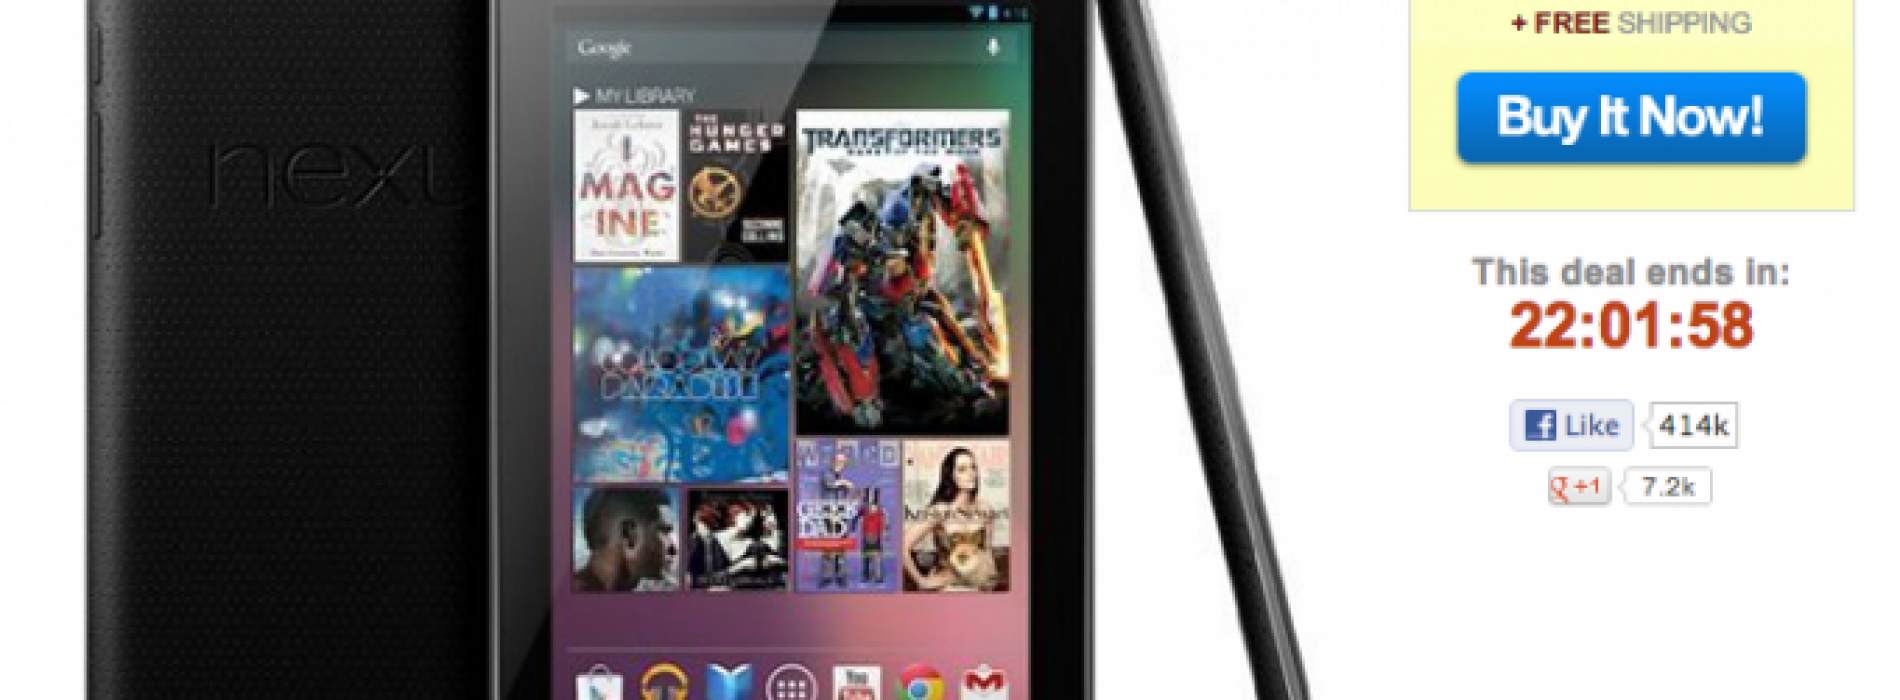 32GB Nexus 7 on sale for $249.99 with free shipping, today only